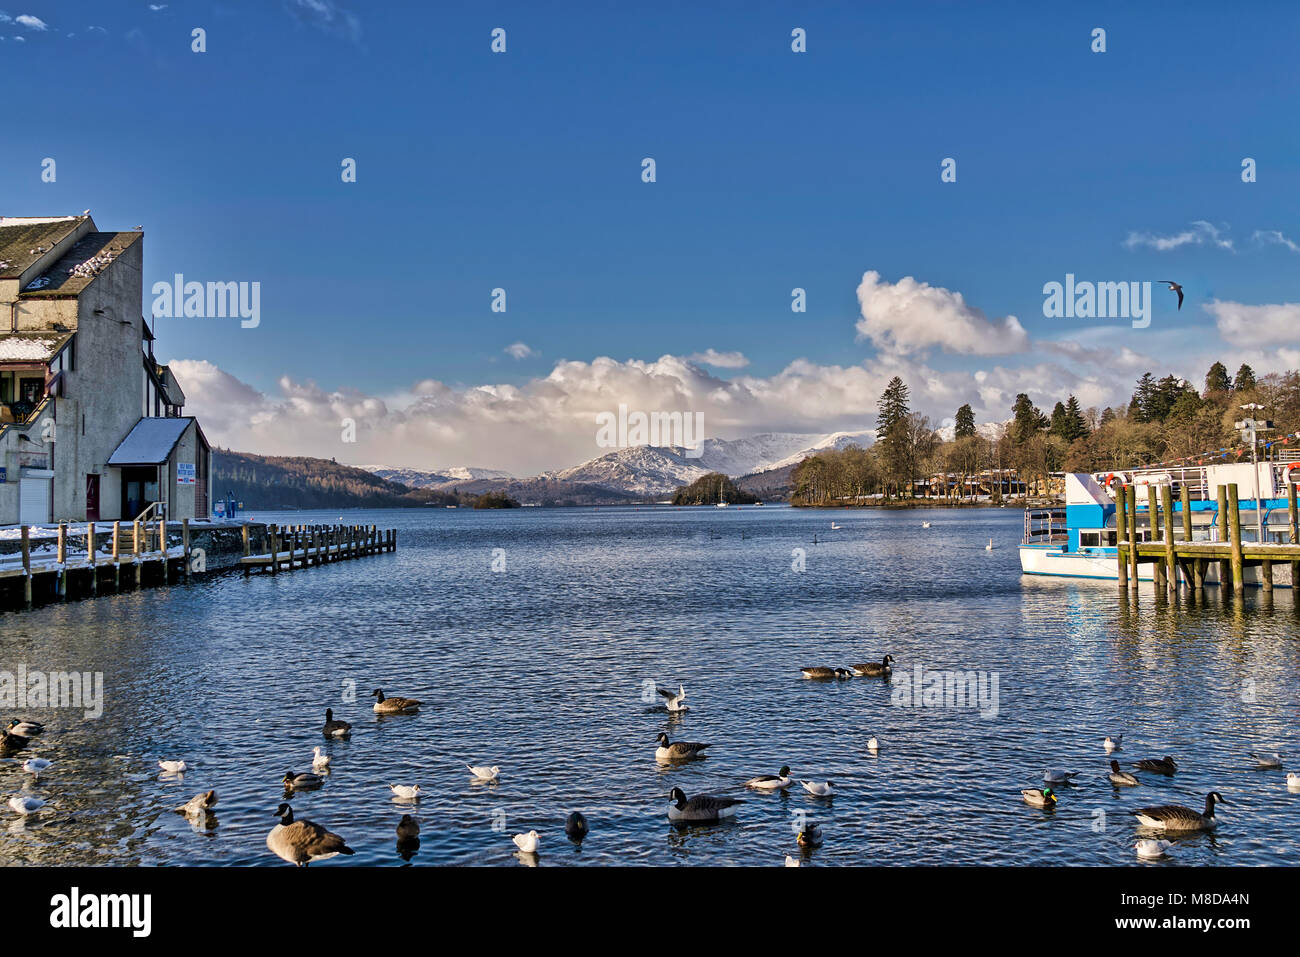 Bowness-on-Windermere with Fairfield on the horizon. - Stock Image